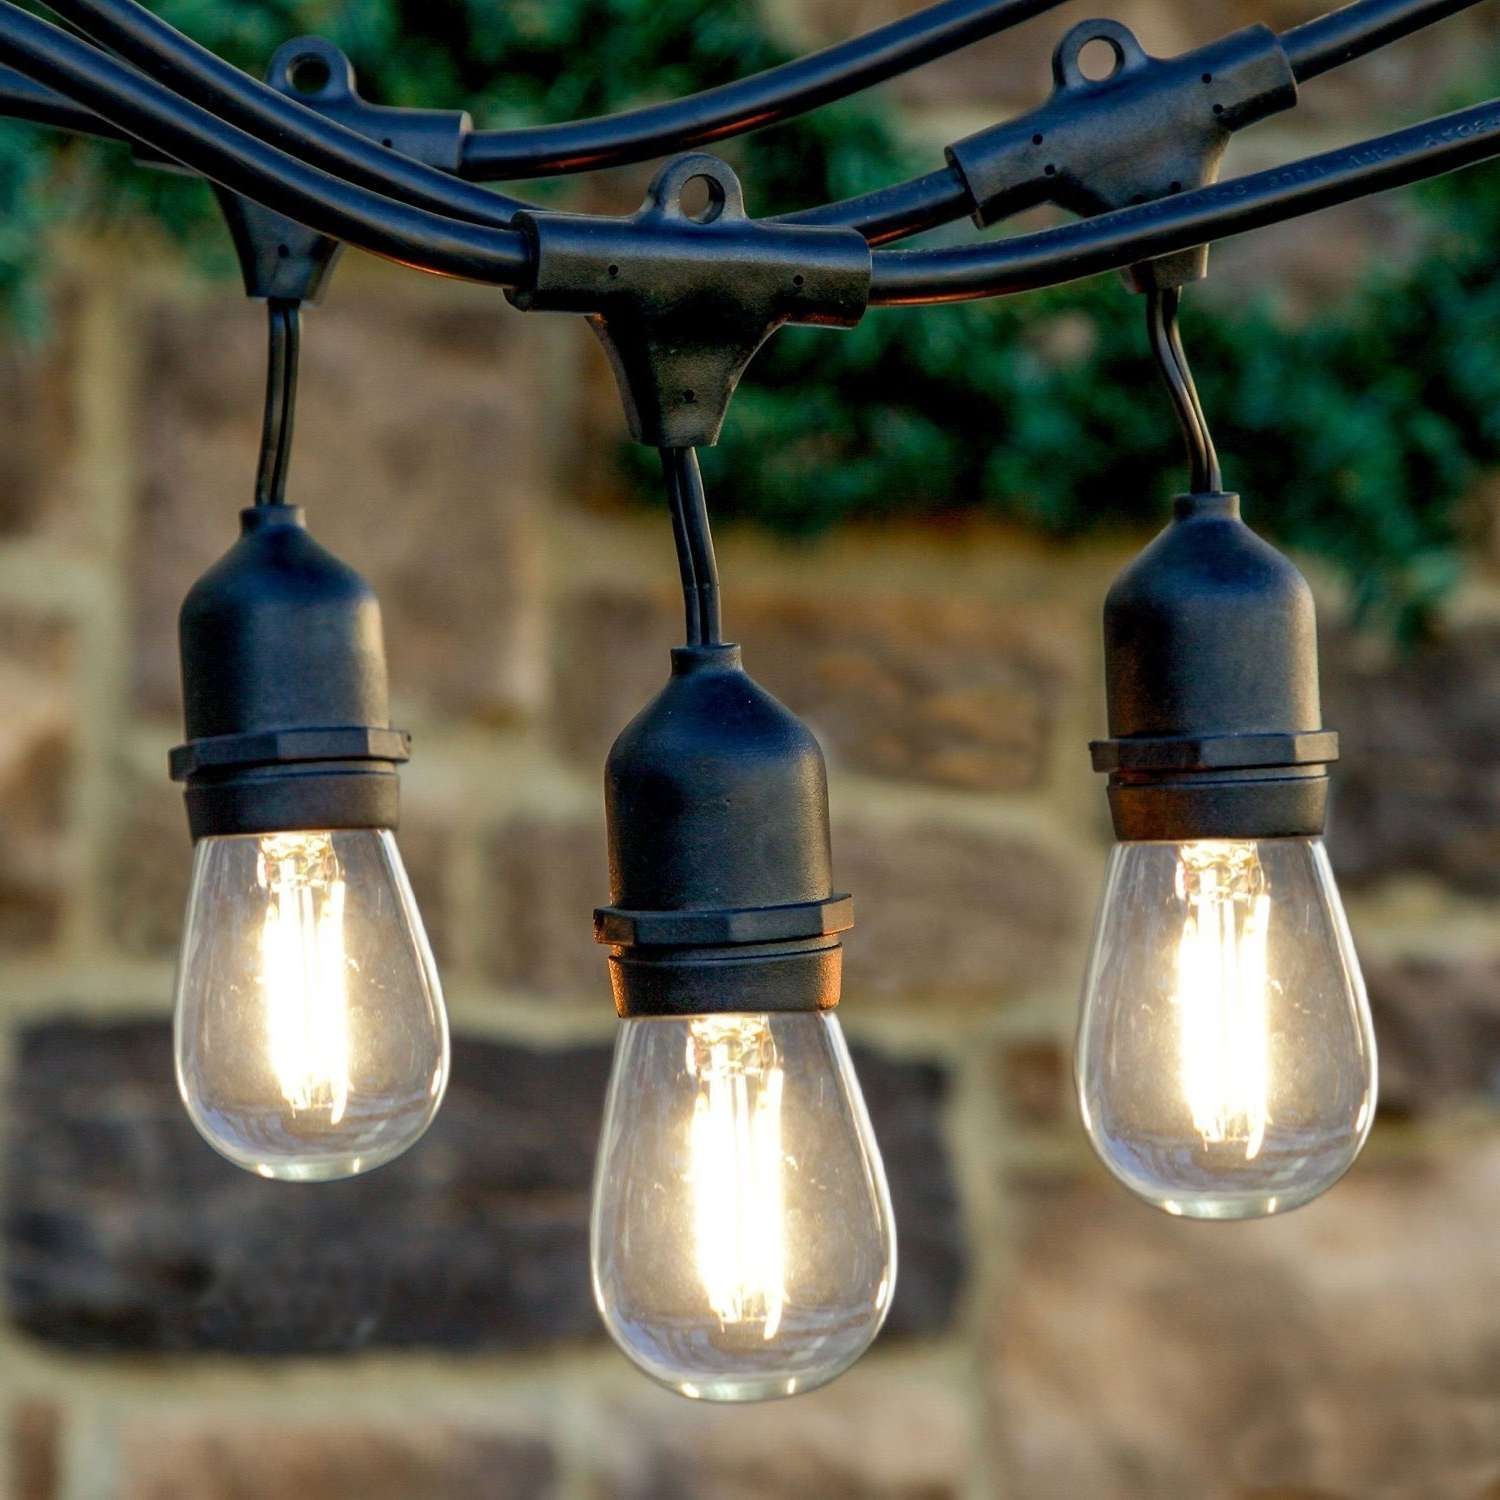 Most Popular Newhouse Lighting 48 Foot Outdoor String Lights, Led Bulbs Included Regarding Outdoor String Lanterns (View 10 of 20)